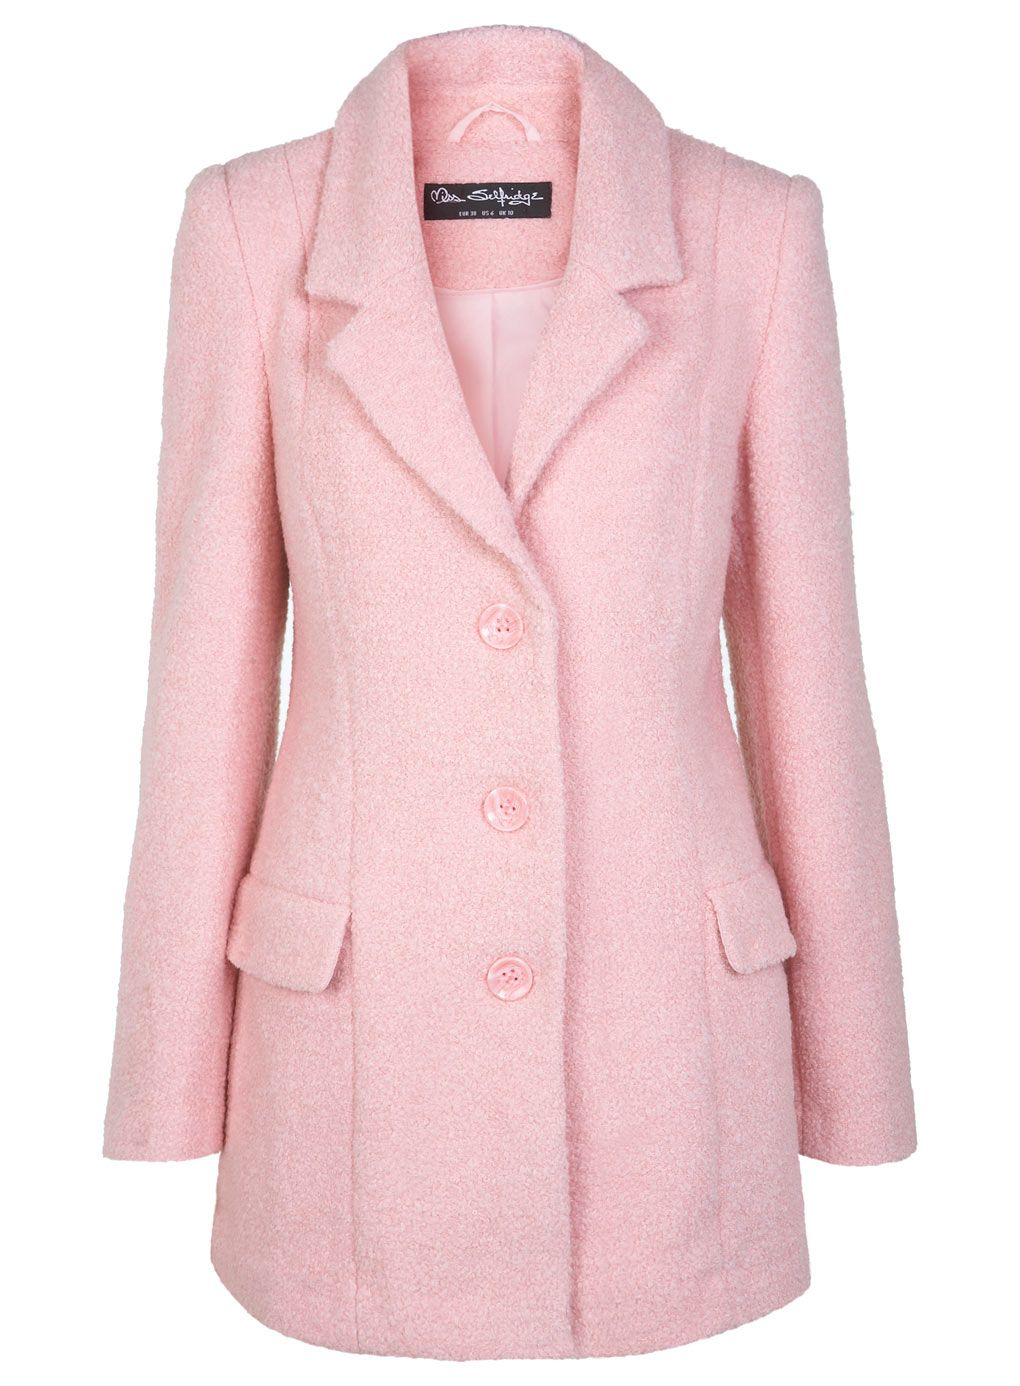 Miss Selfridge Pink Wool Boyfriend Coat, £85 | Autumn/Winter ...